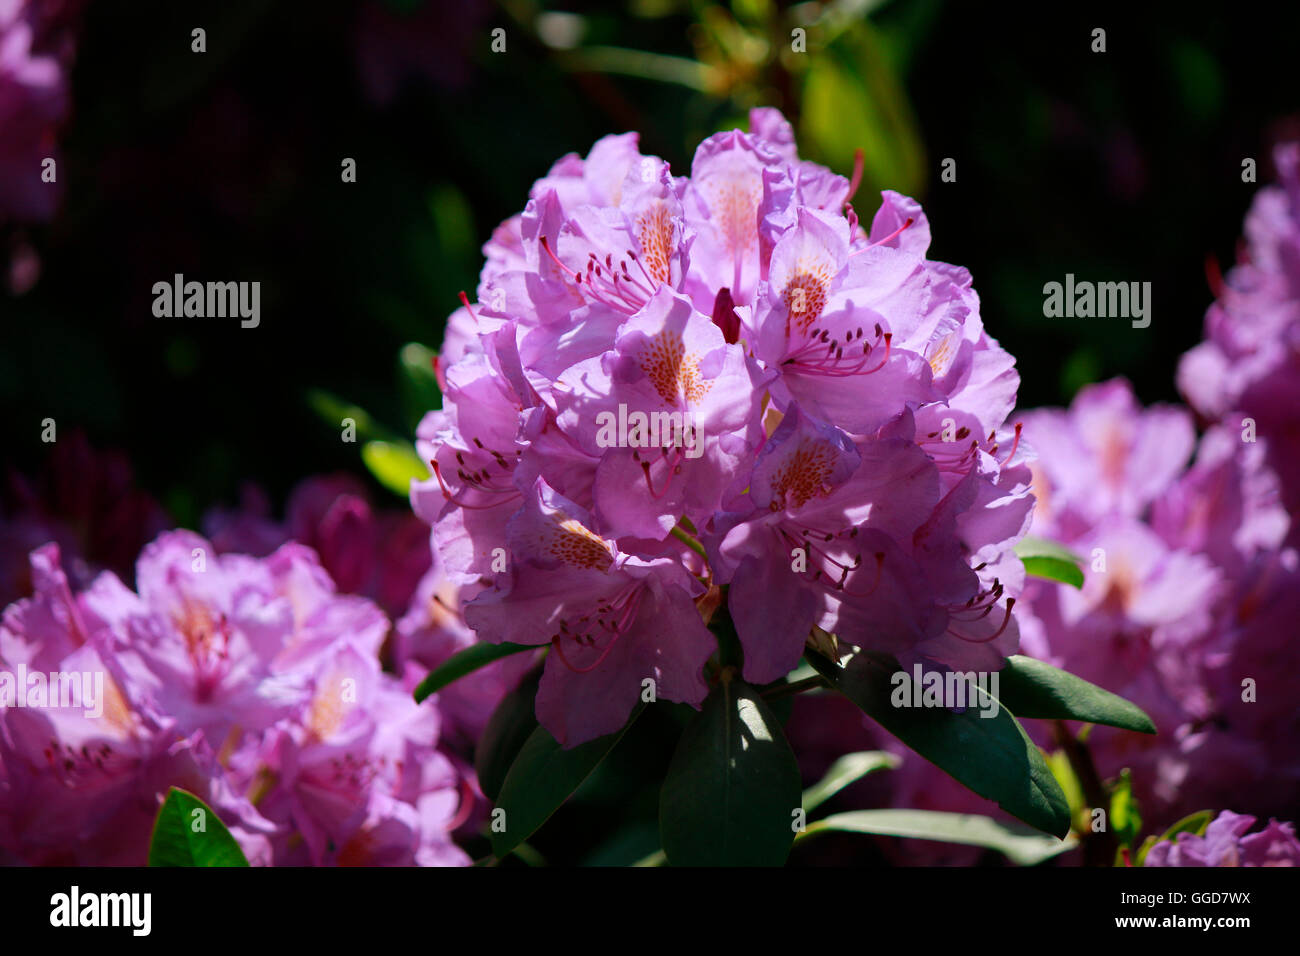 Rhododendron, Berlin. - Stock Image